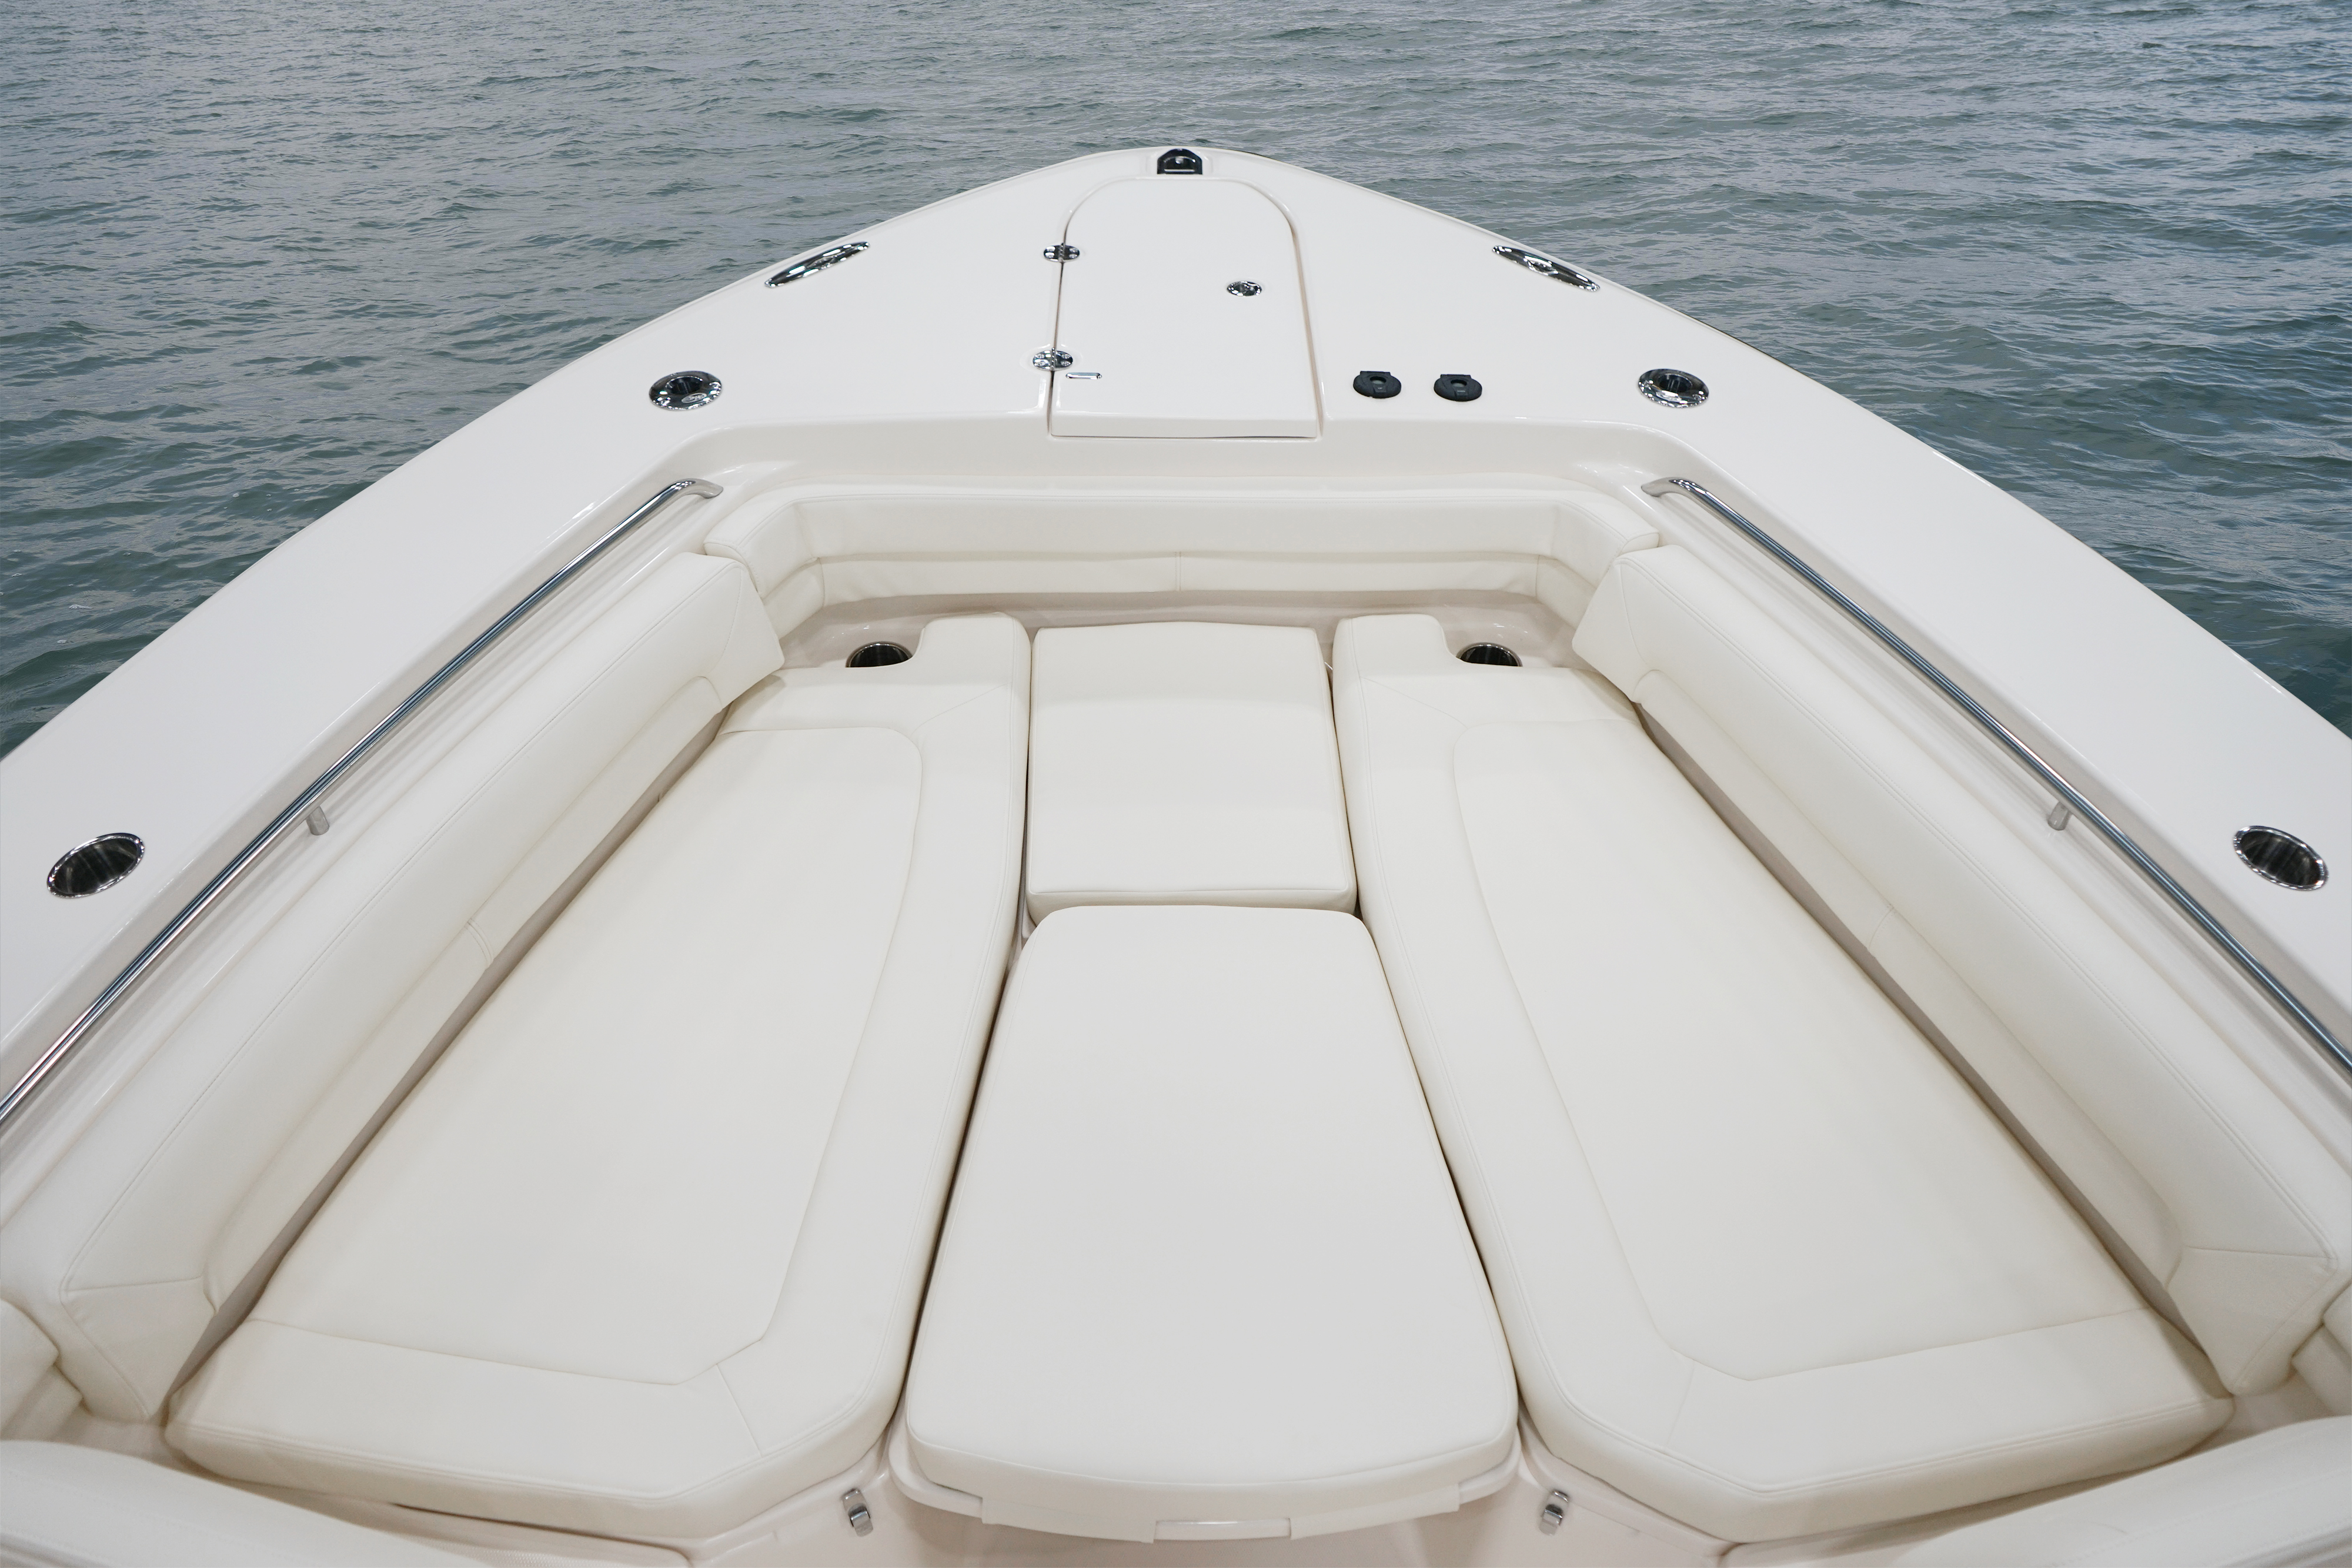 Grady-White Canyon 376, 37-foot center console casting platform insert with cushions